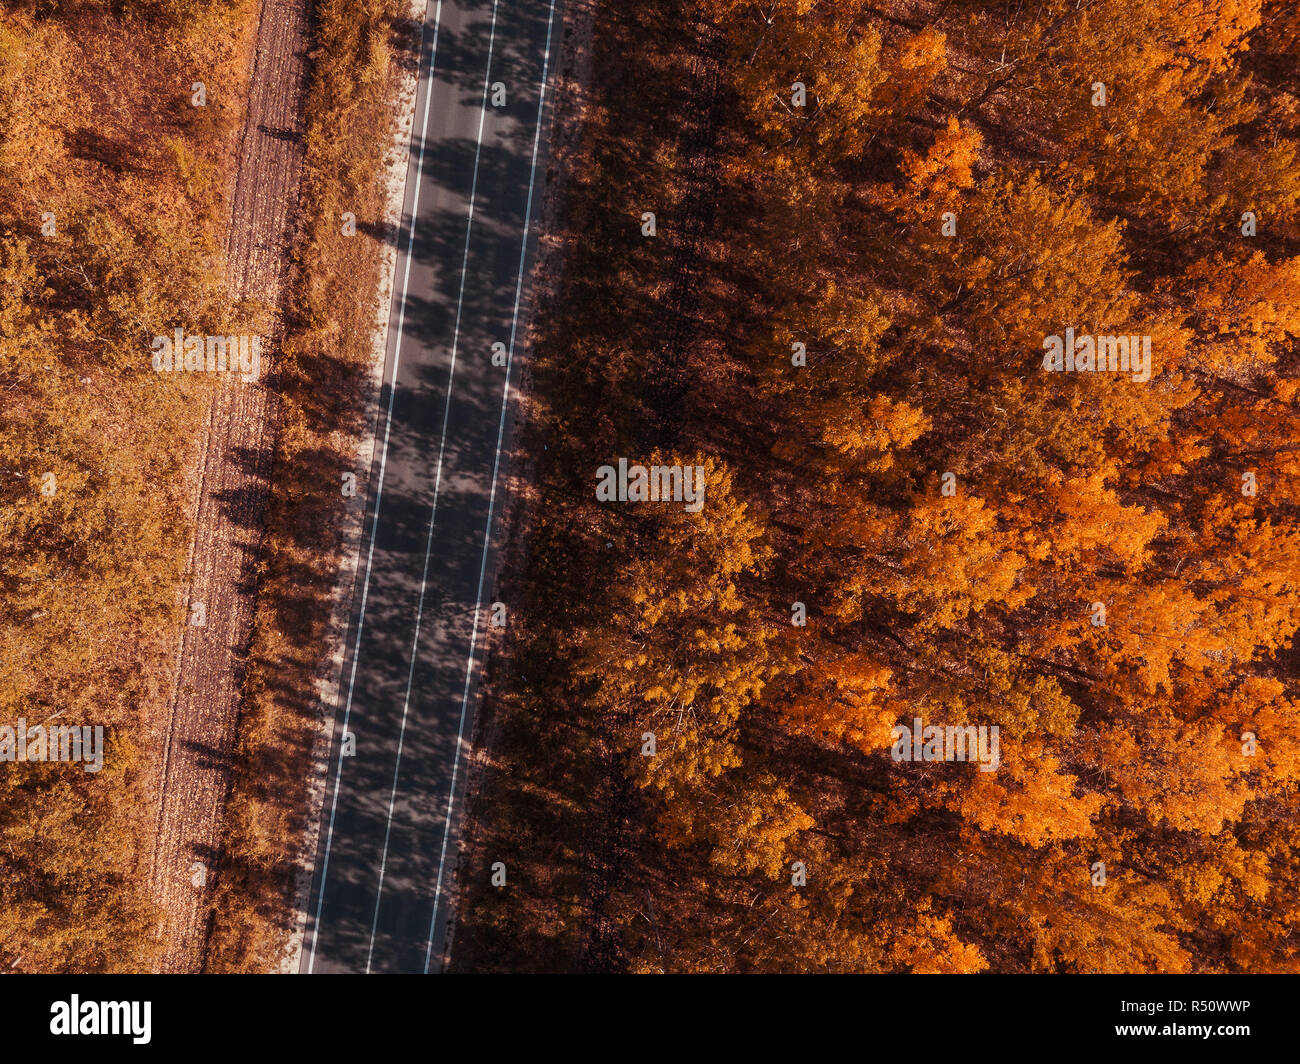 Aerial view of empty road through forest in autumn, indian summer scenery from drone point of view - Stock Image